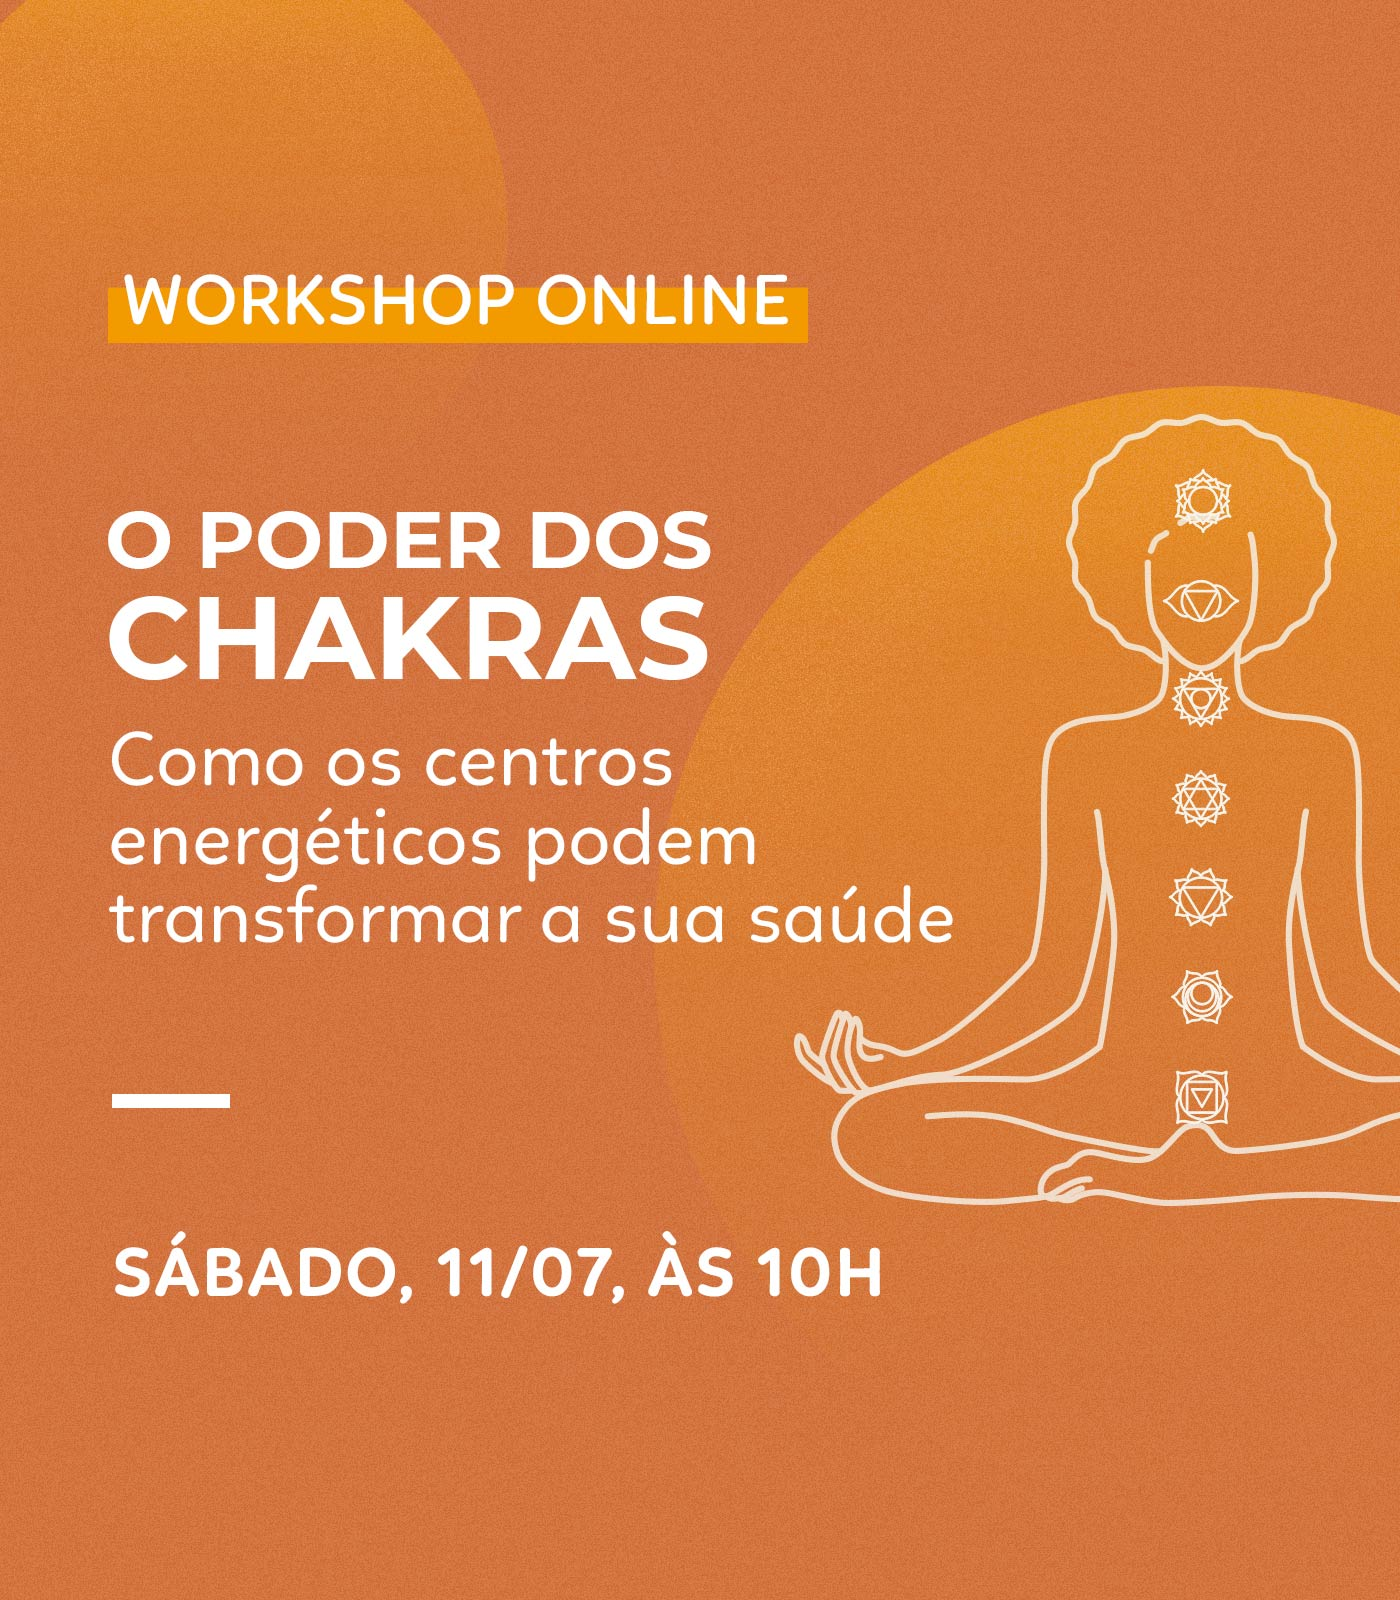 WORKSHOP: O poder dos chakras